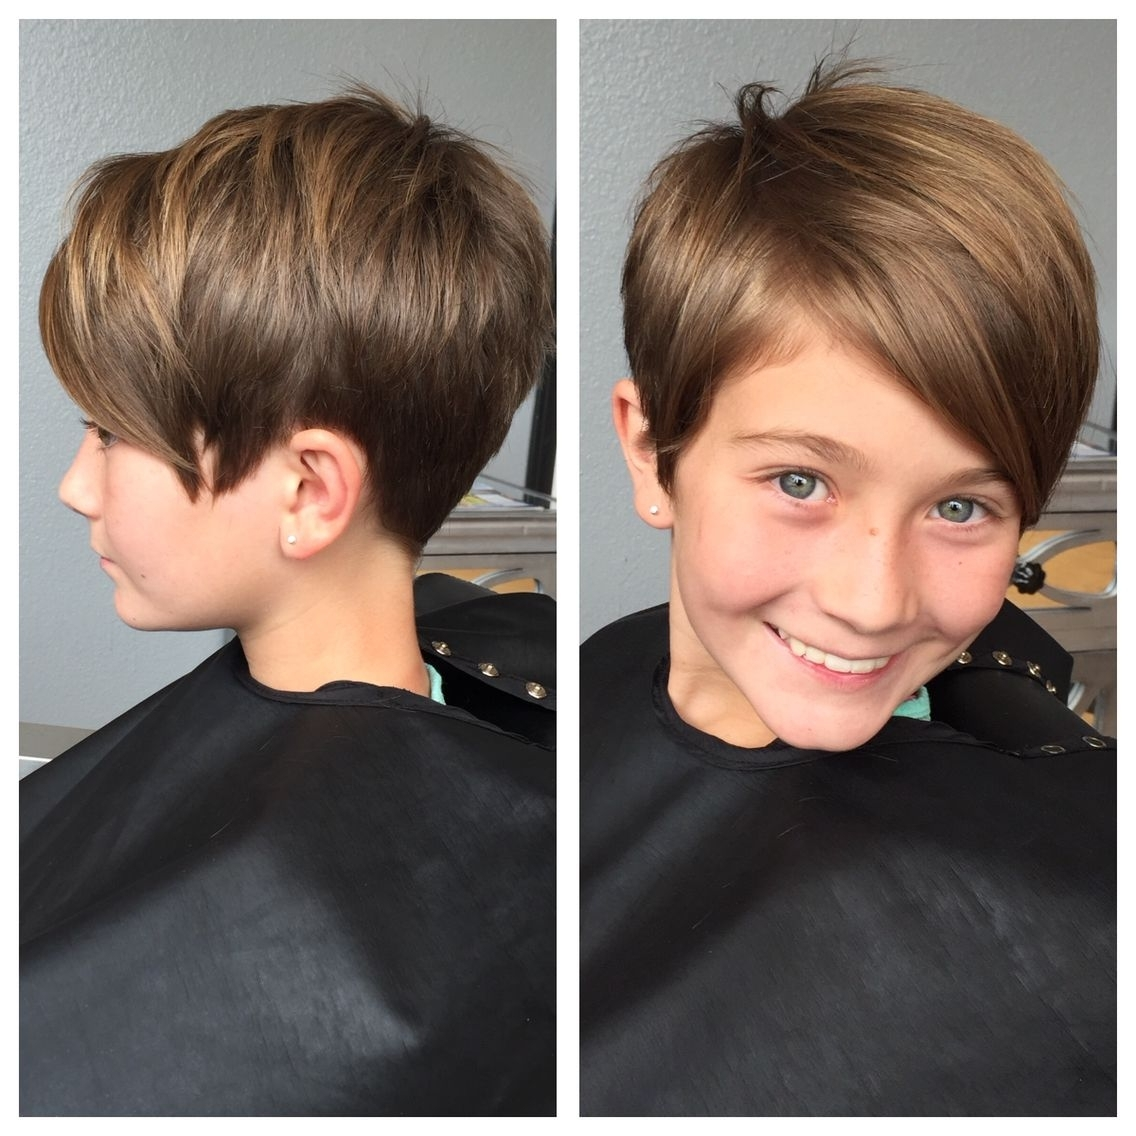 Kids Pixie Haircut   Hair   Pinterest   Pixie Haircut, Pixies And Within Most Recent Little Girls Pixie Hairstyles (View 7 of 15)